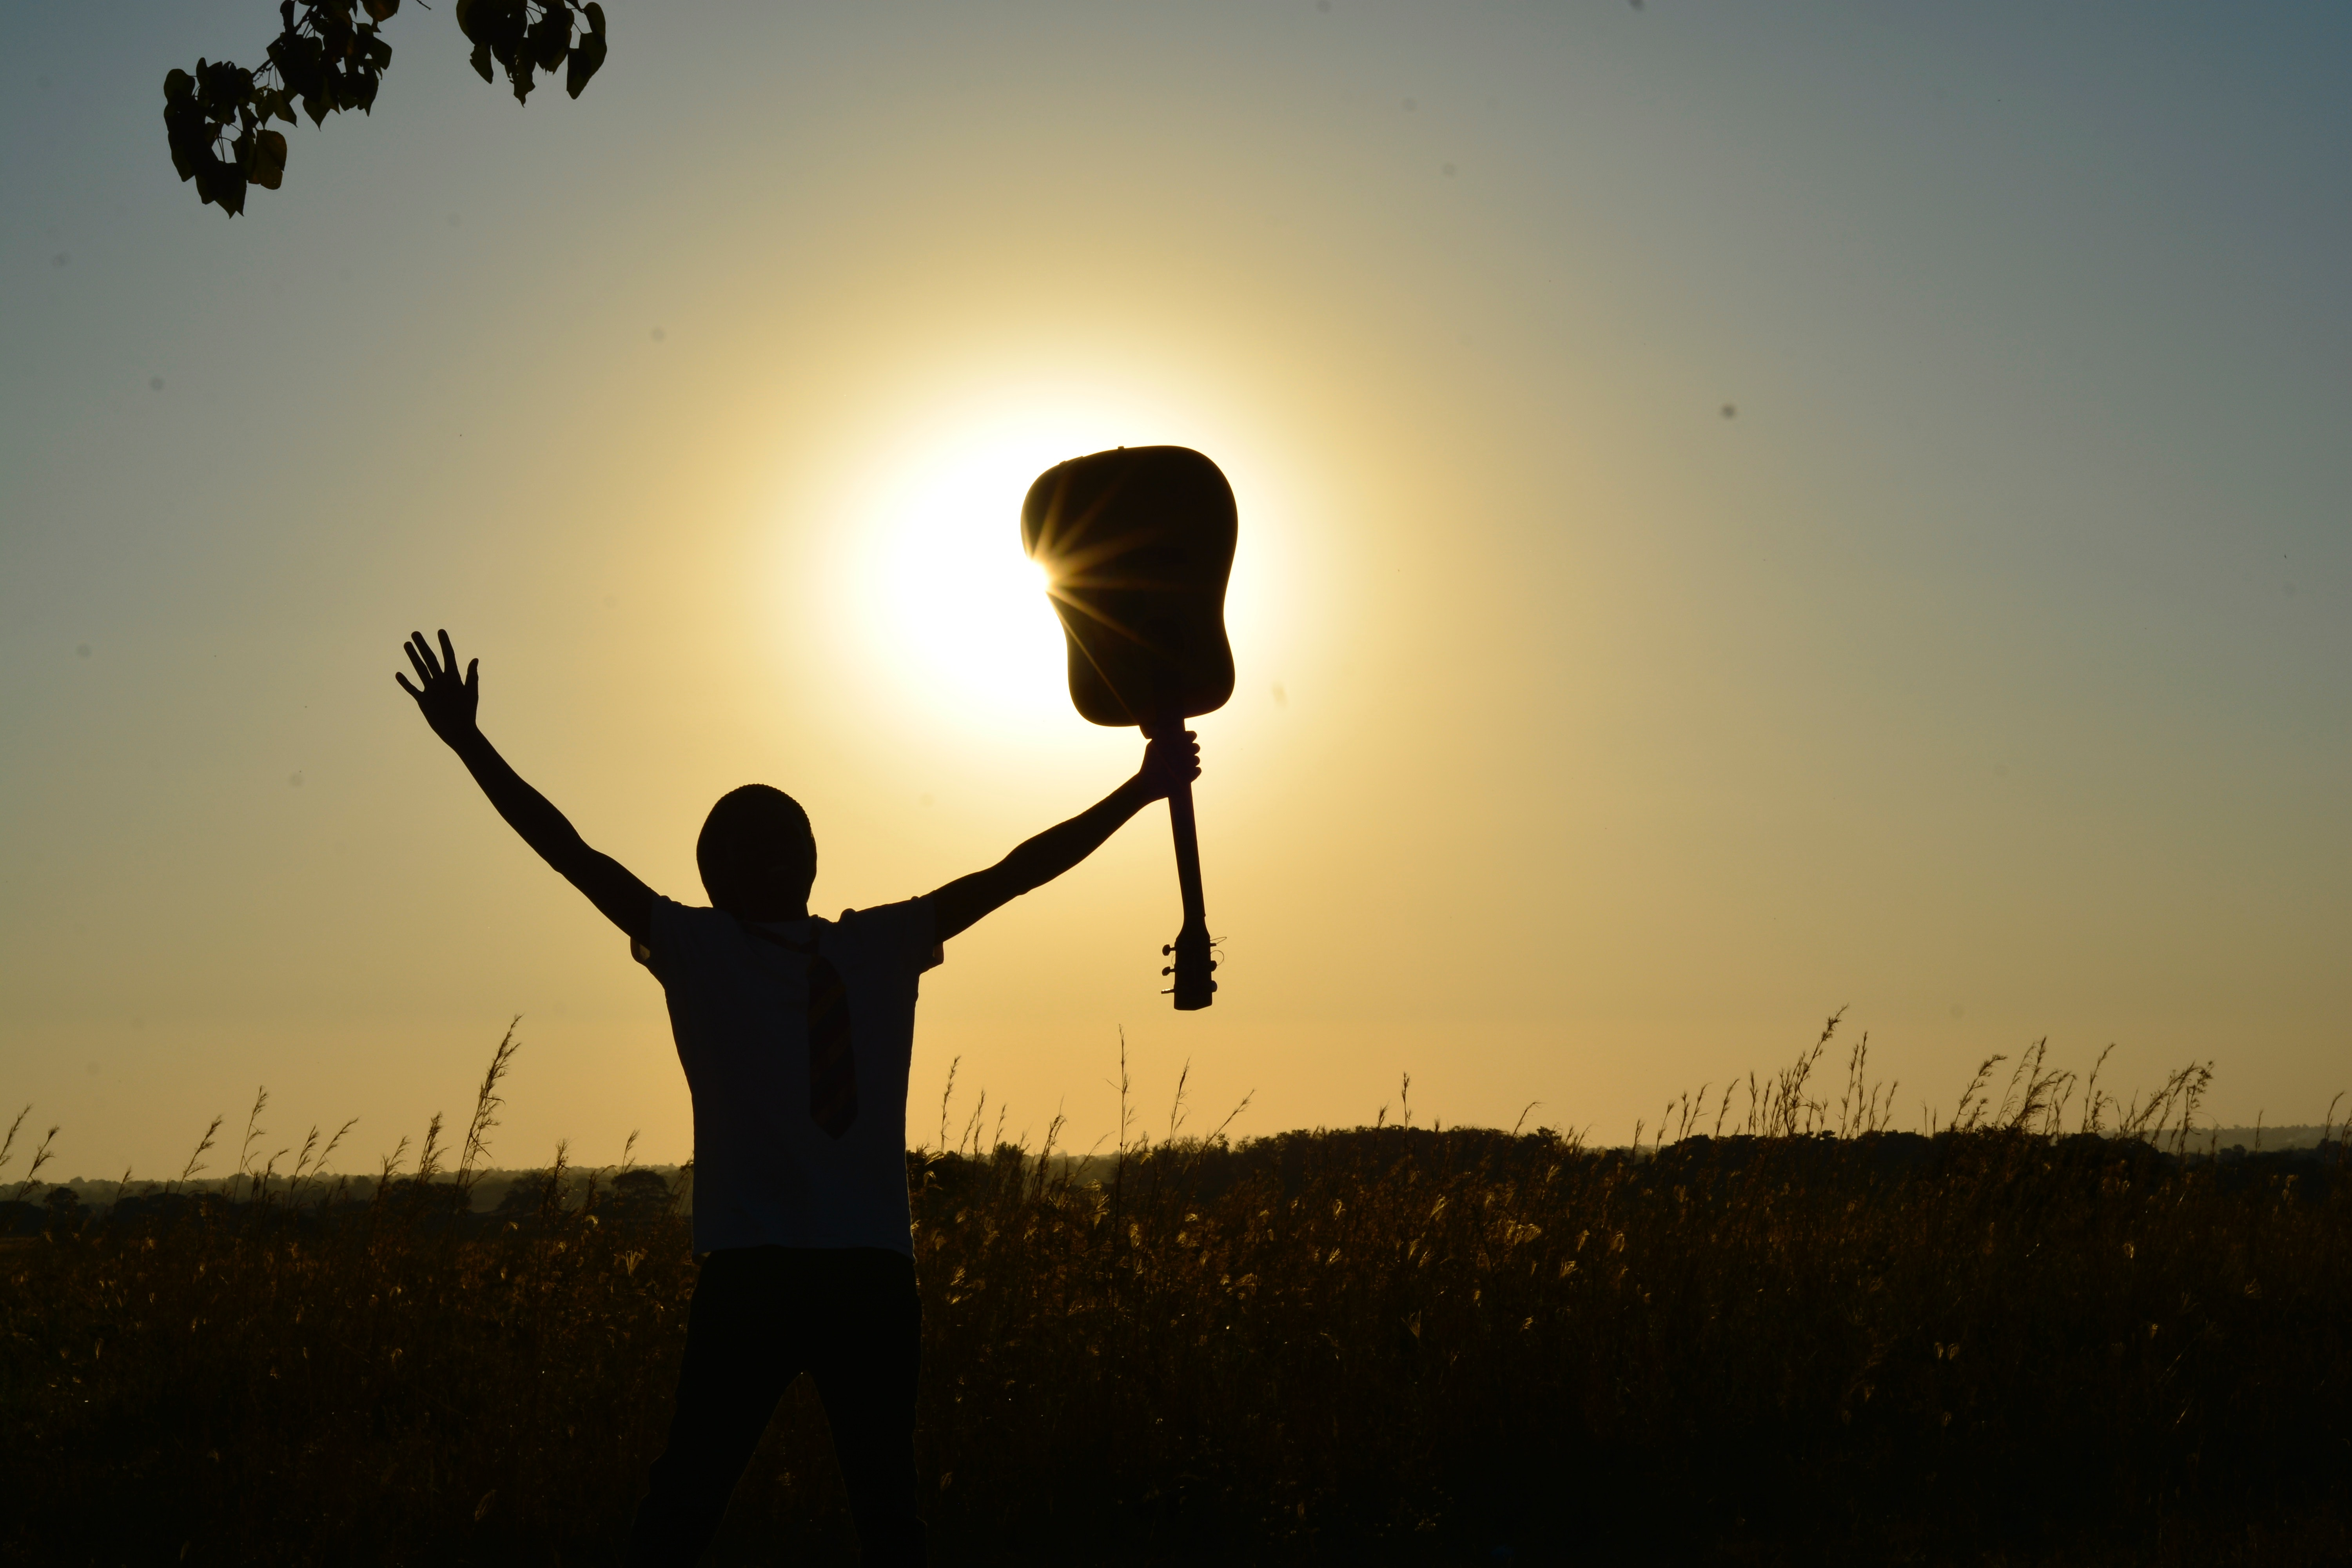 holding a guitar over the light of the sun